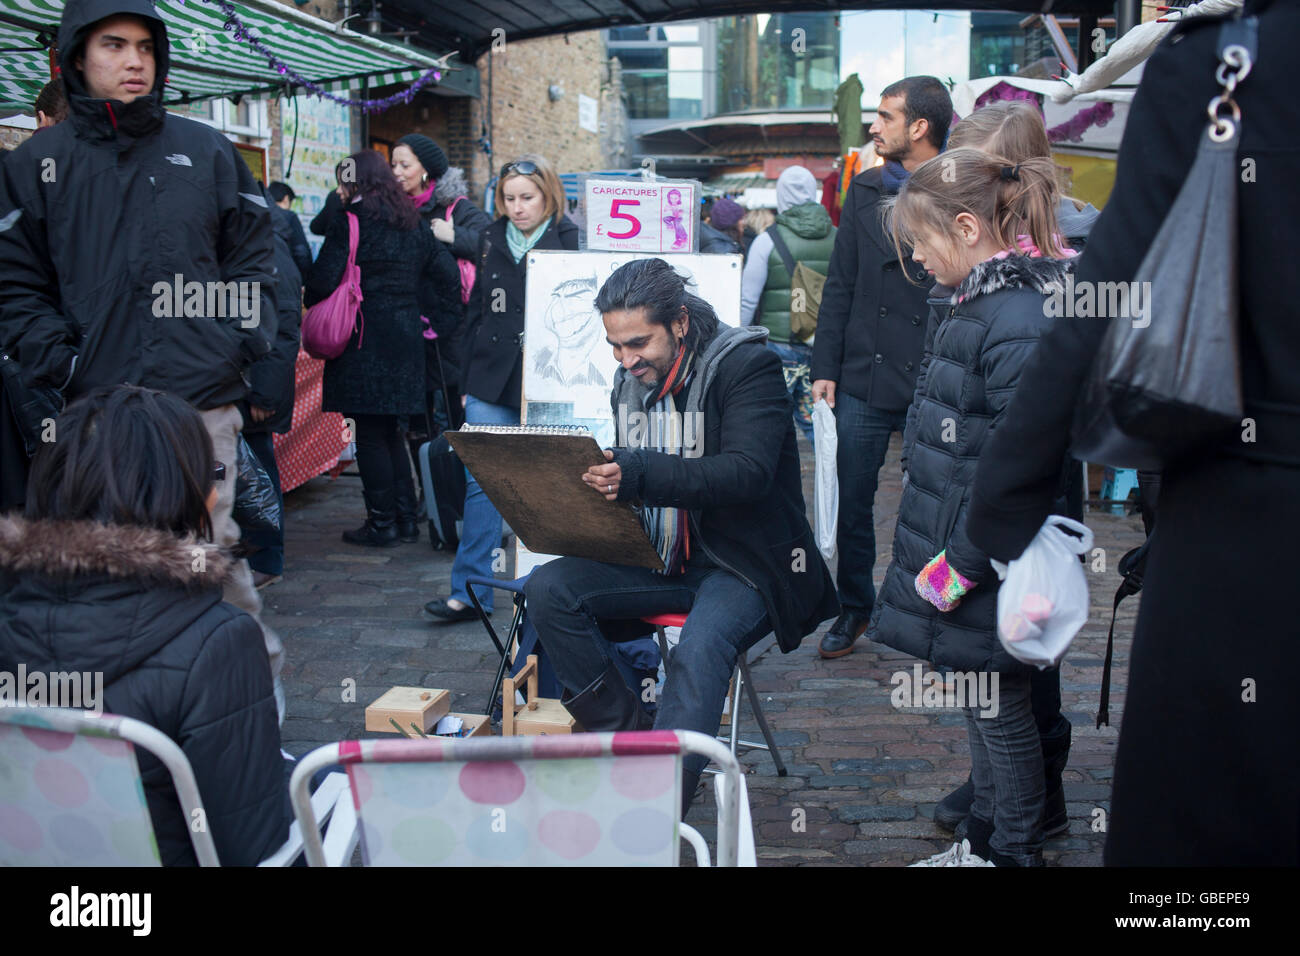 Caricaturist working in Camden's The Stables Market - Stock Image